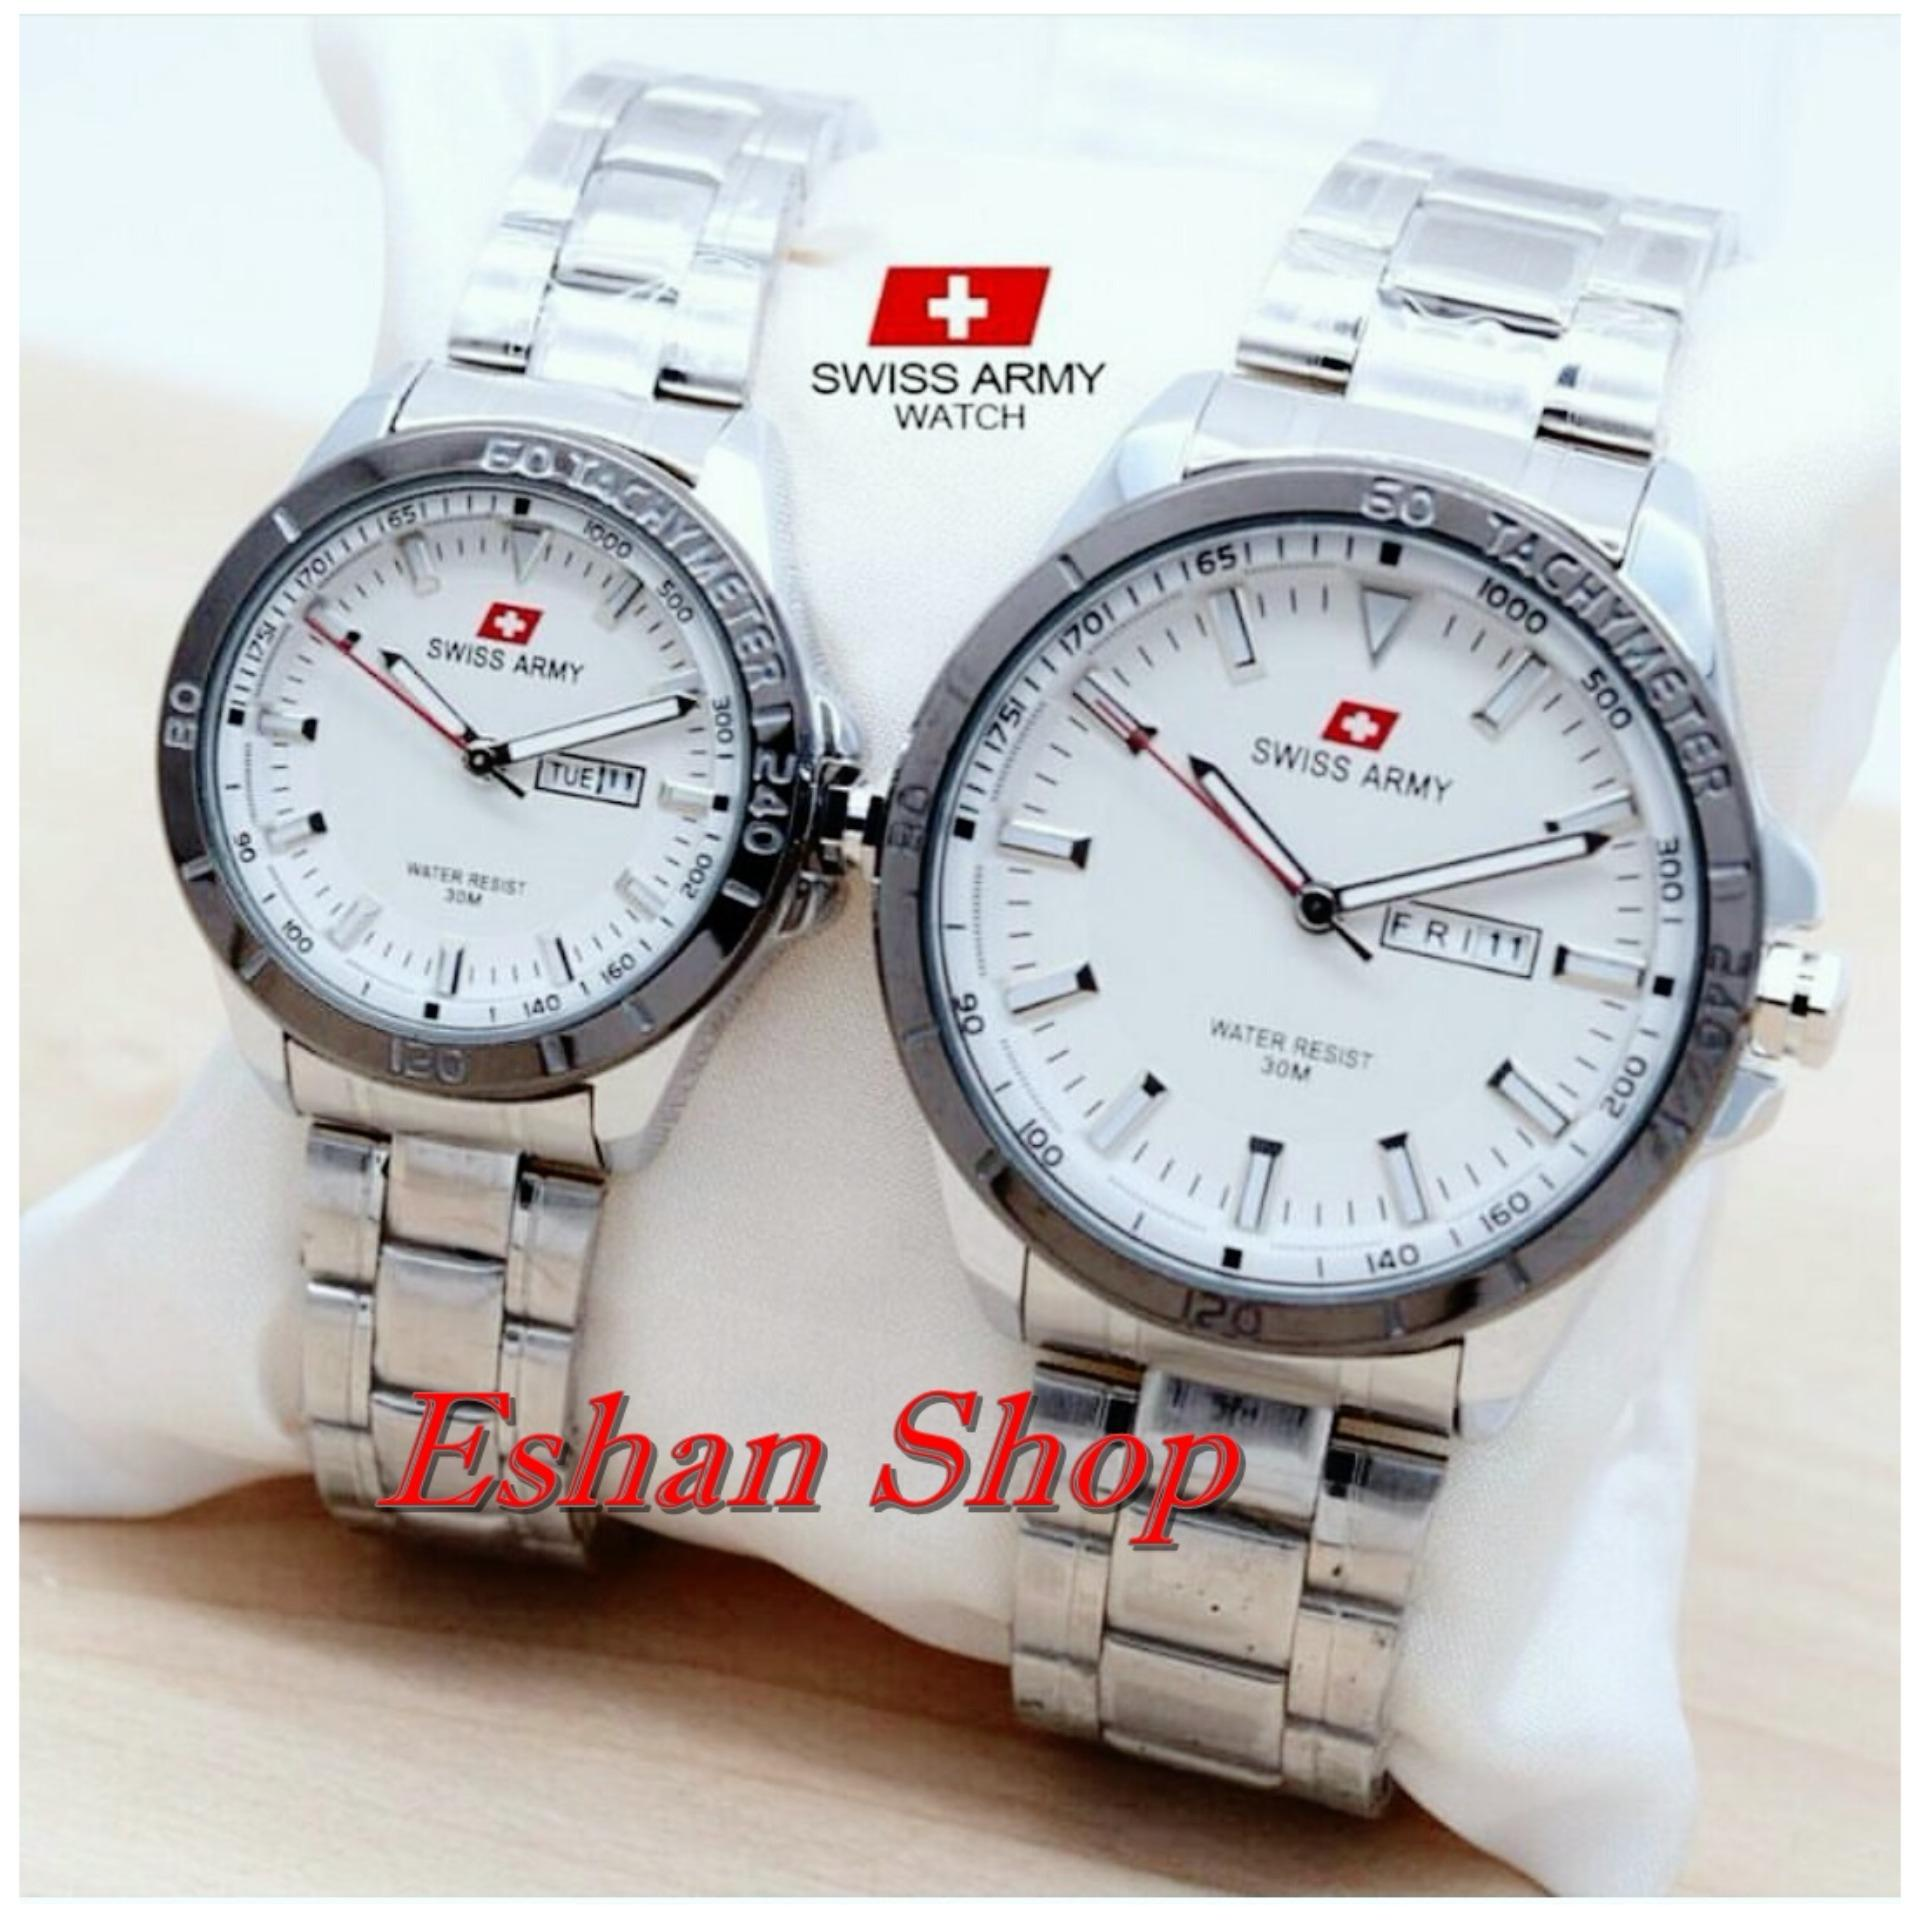 Water Resistant 50M Swiss Army SA5153FG - Jam Tangan Couple -Stainlesstell Strap - Silver